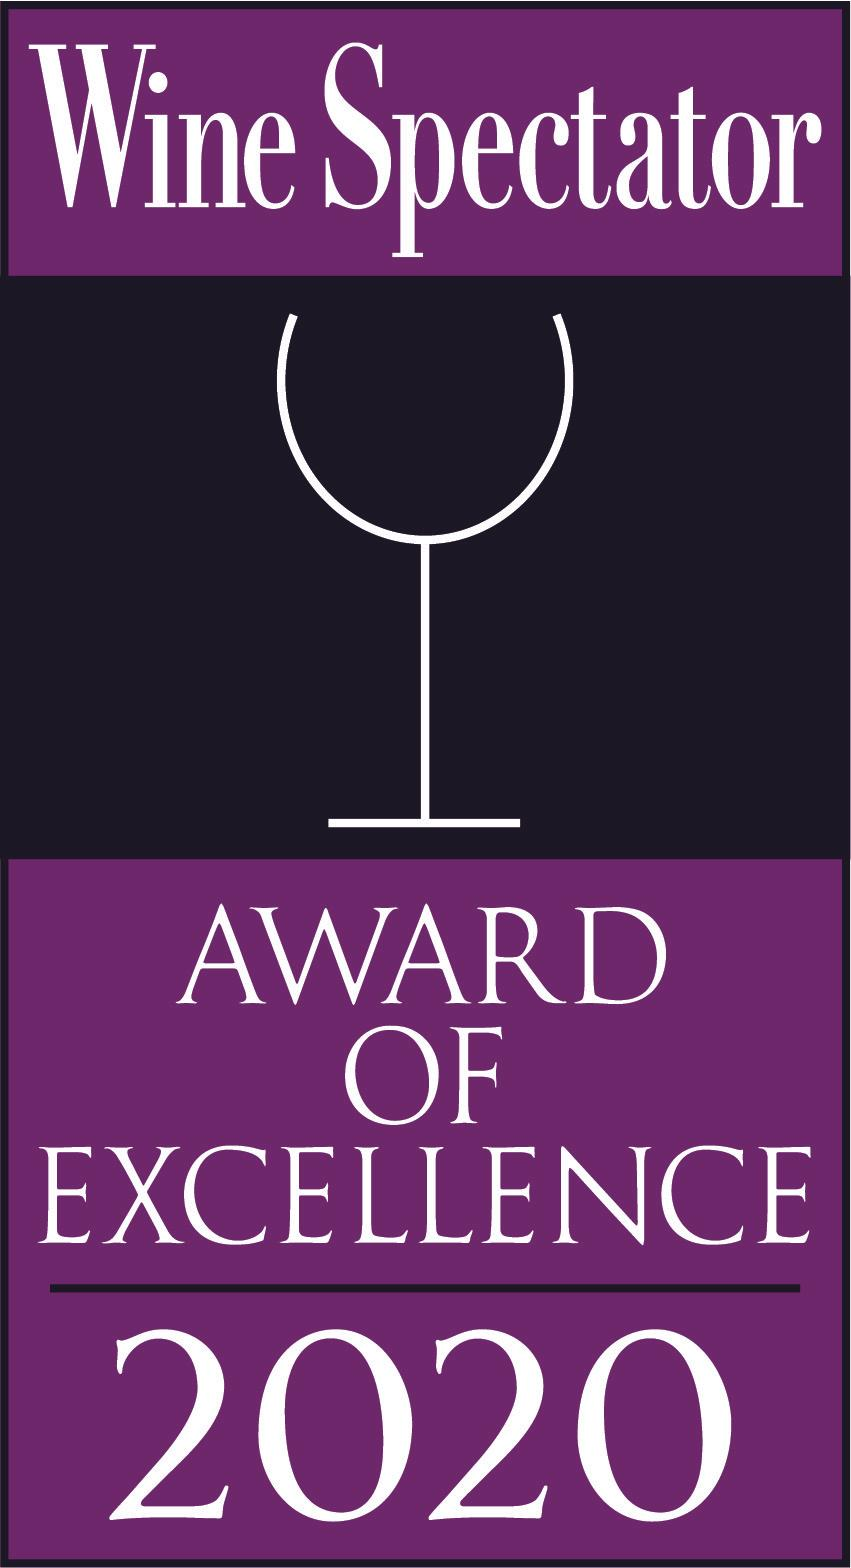 Wine Spectator Award of Excellence: 2020